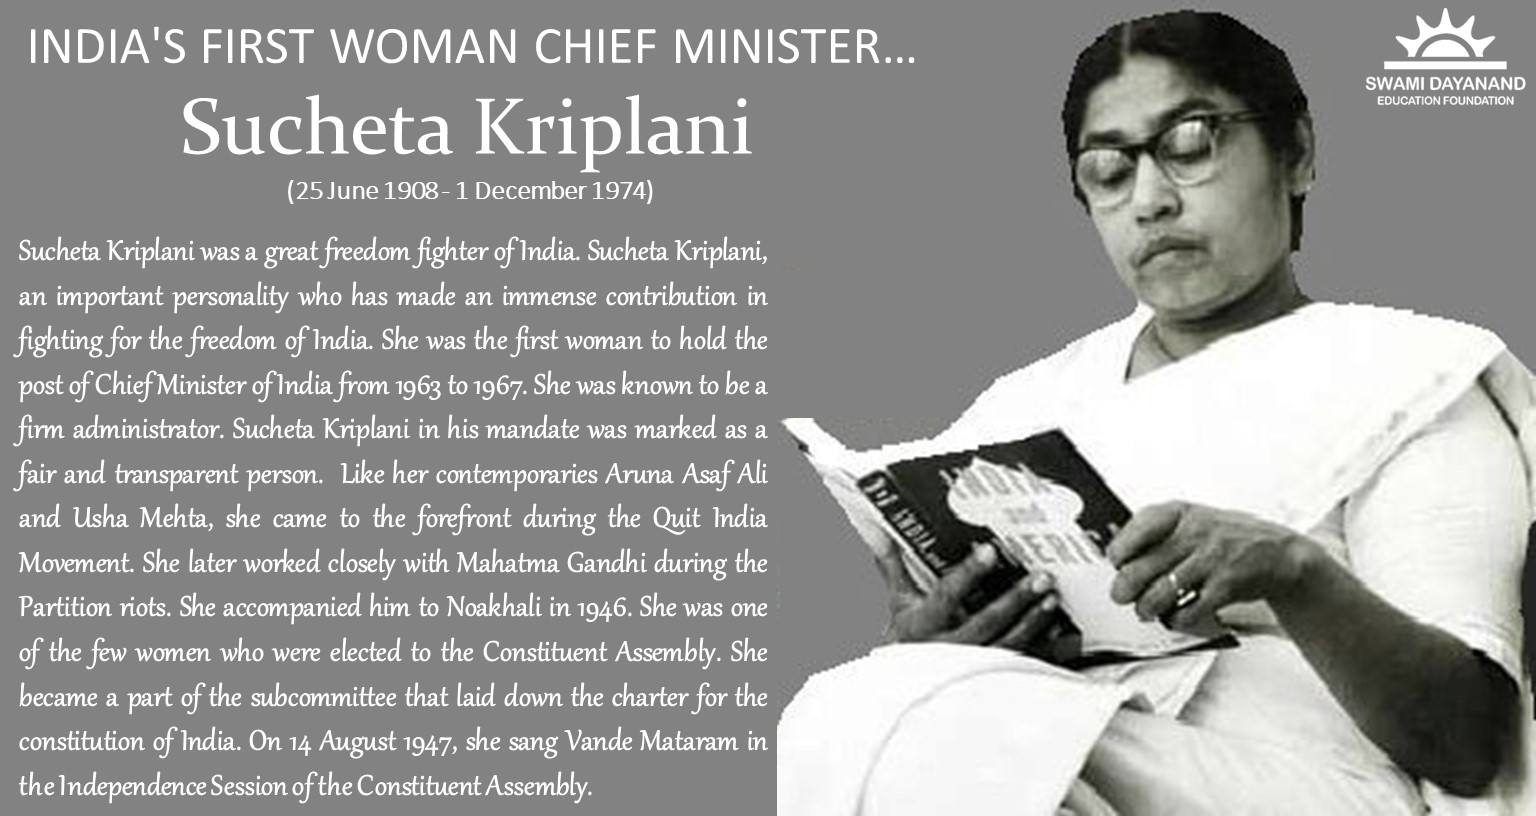 SUCHETA KRIPLANI  (25th June 1908 - 1st December 1974)